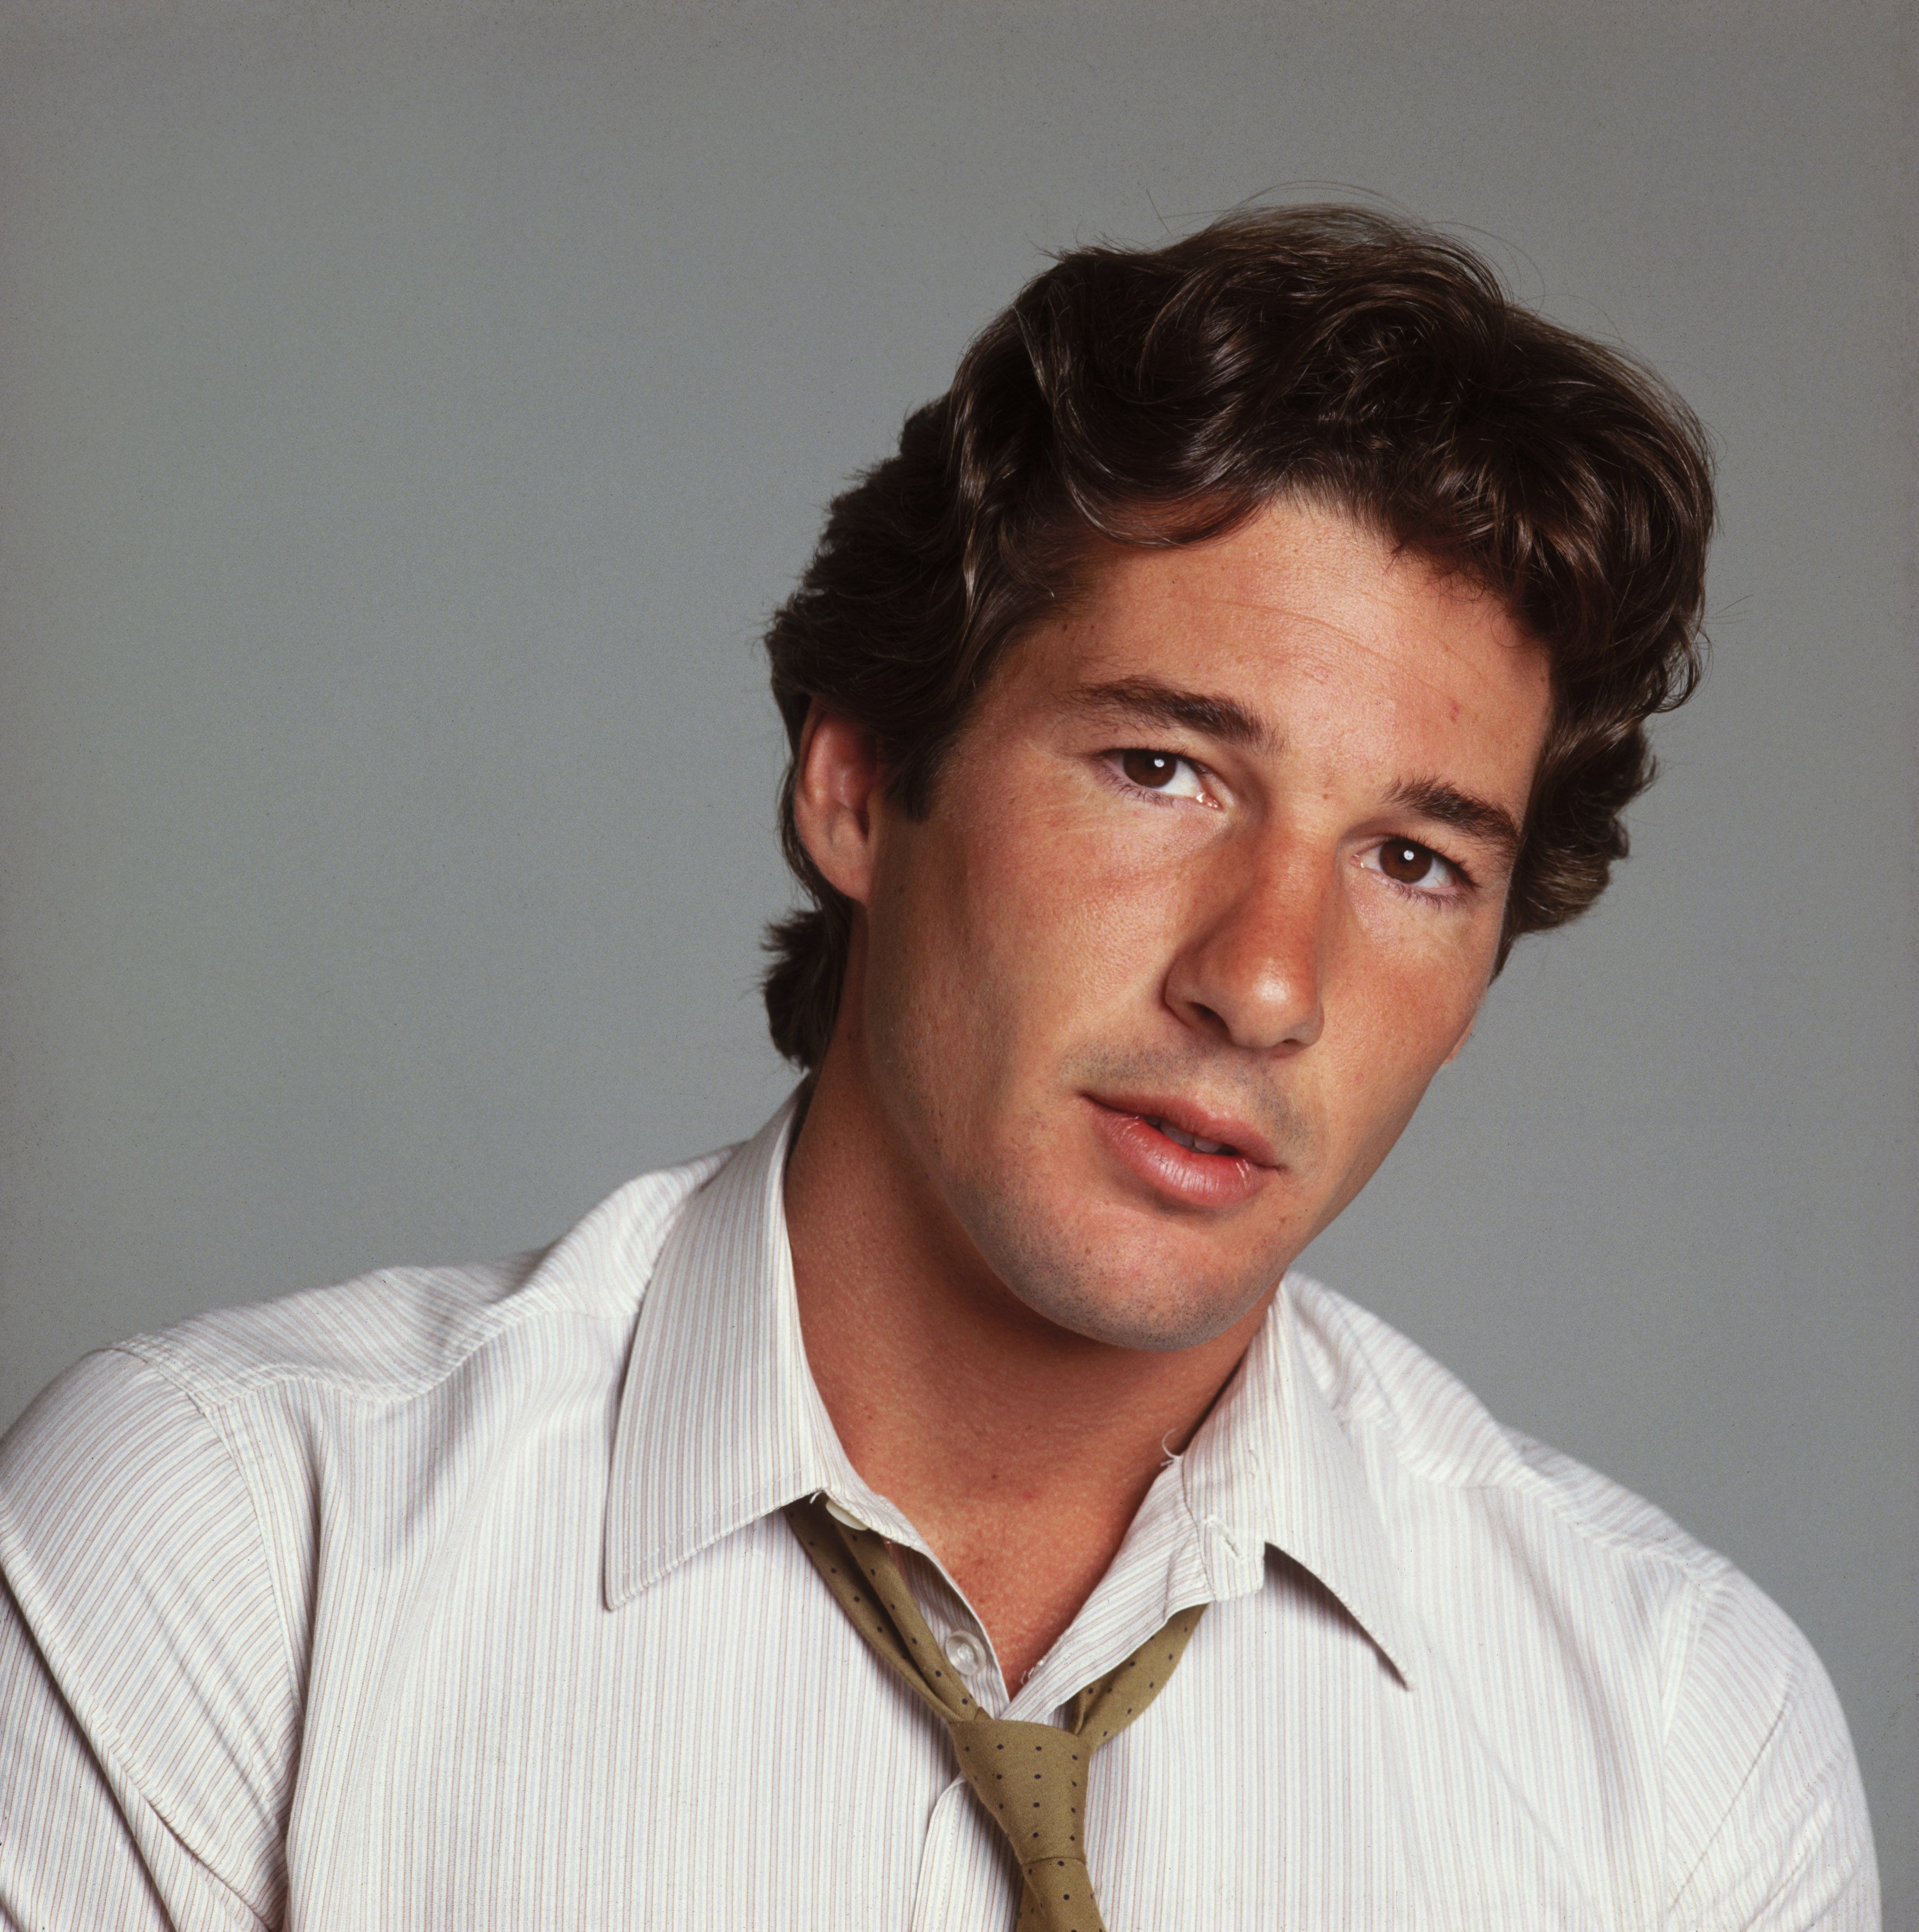 Richard Gere at 30 Gere first rose to prominence with his role in American Gigolo .